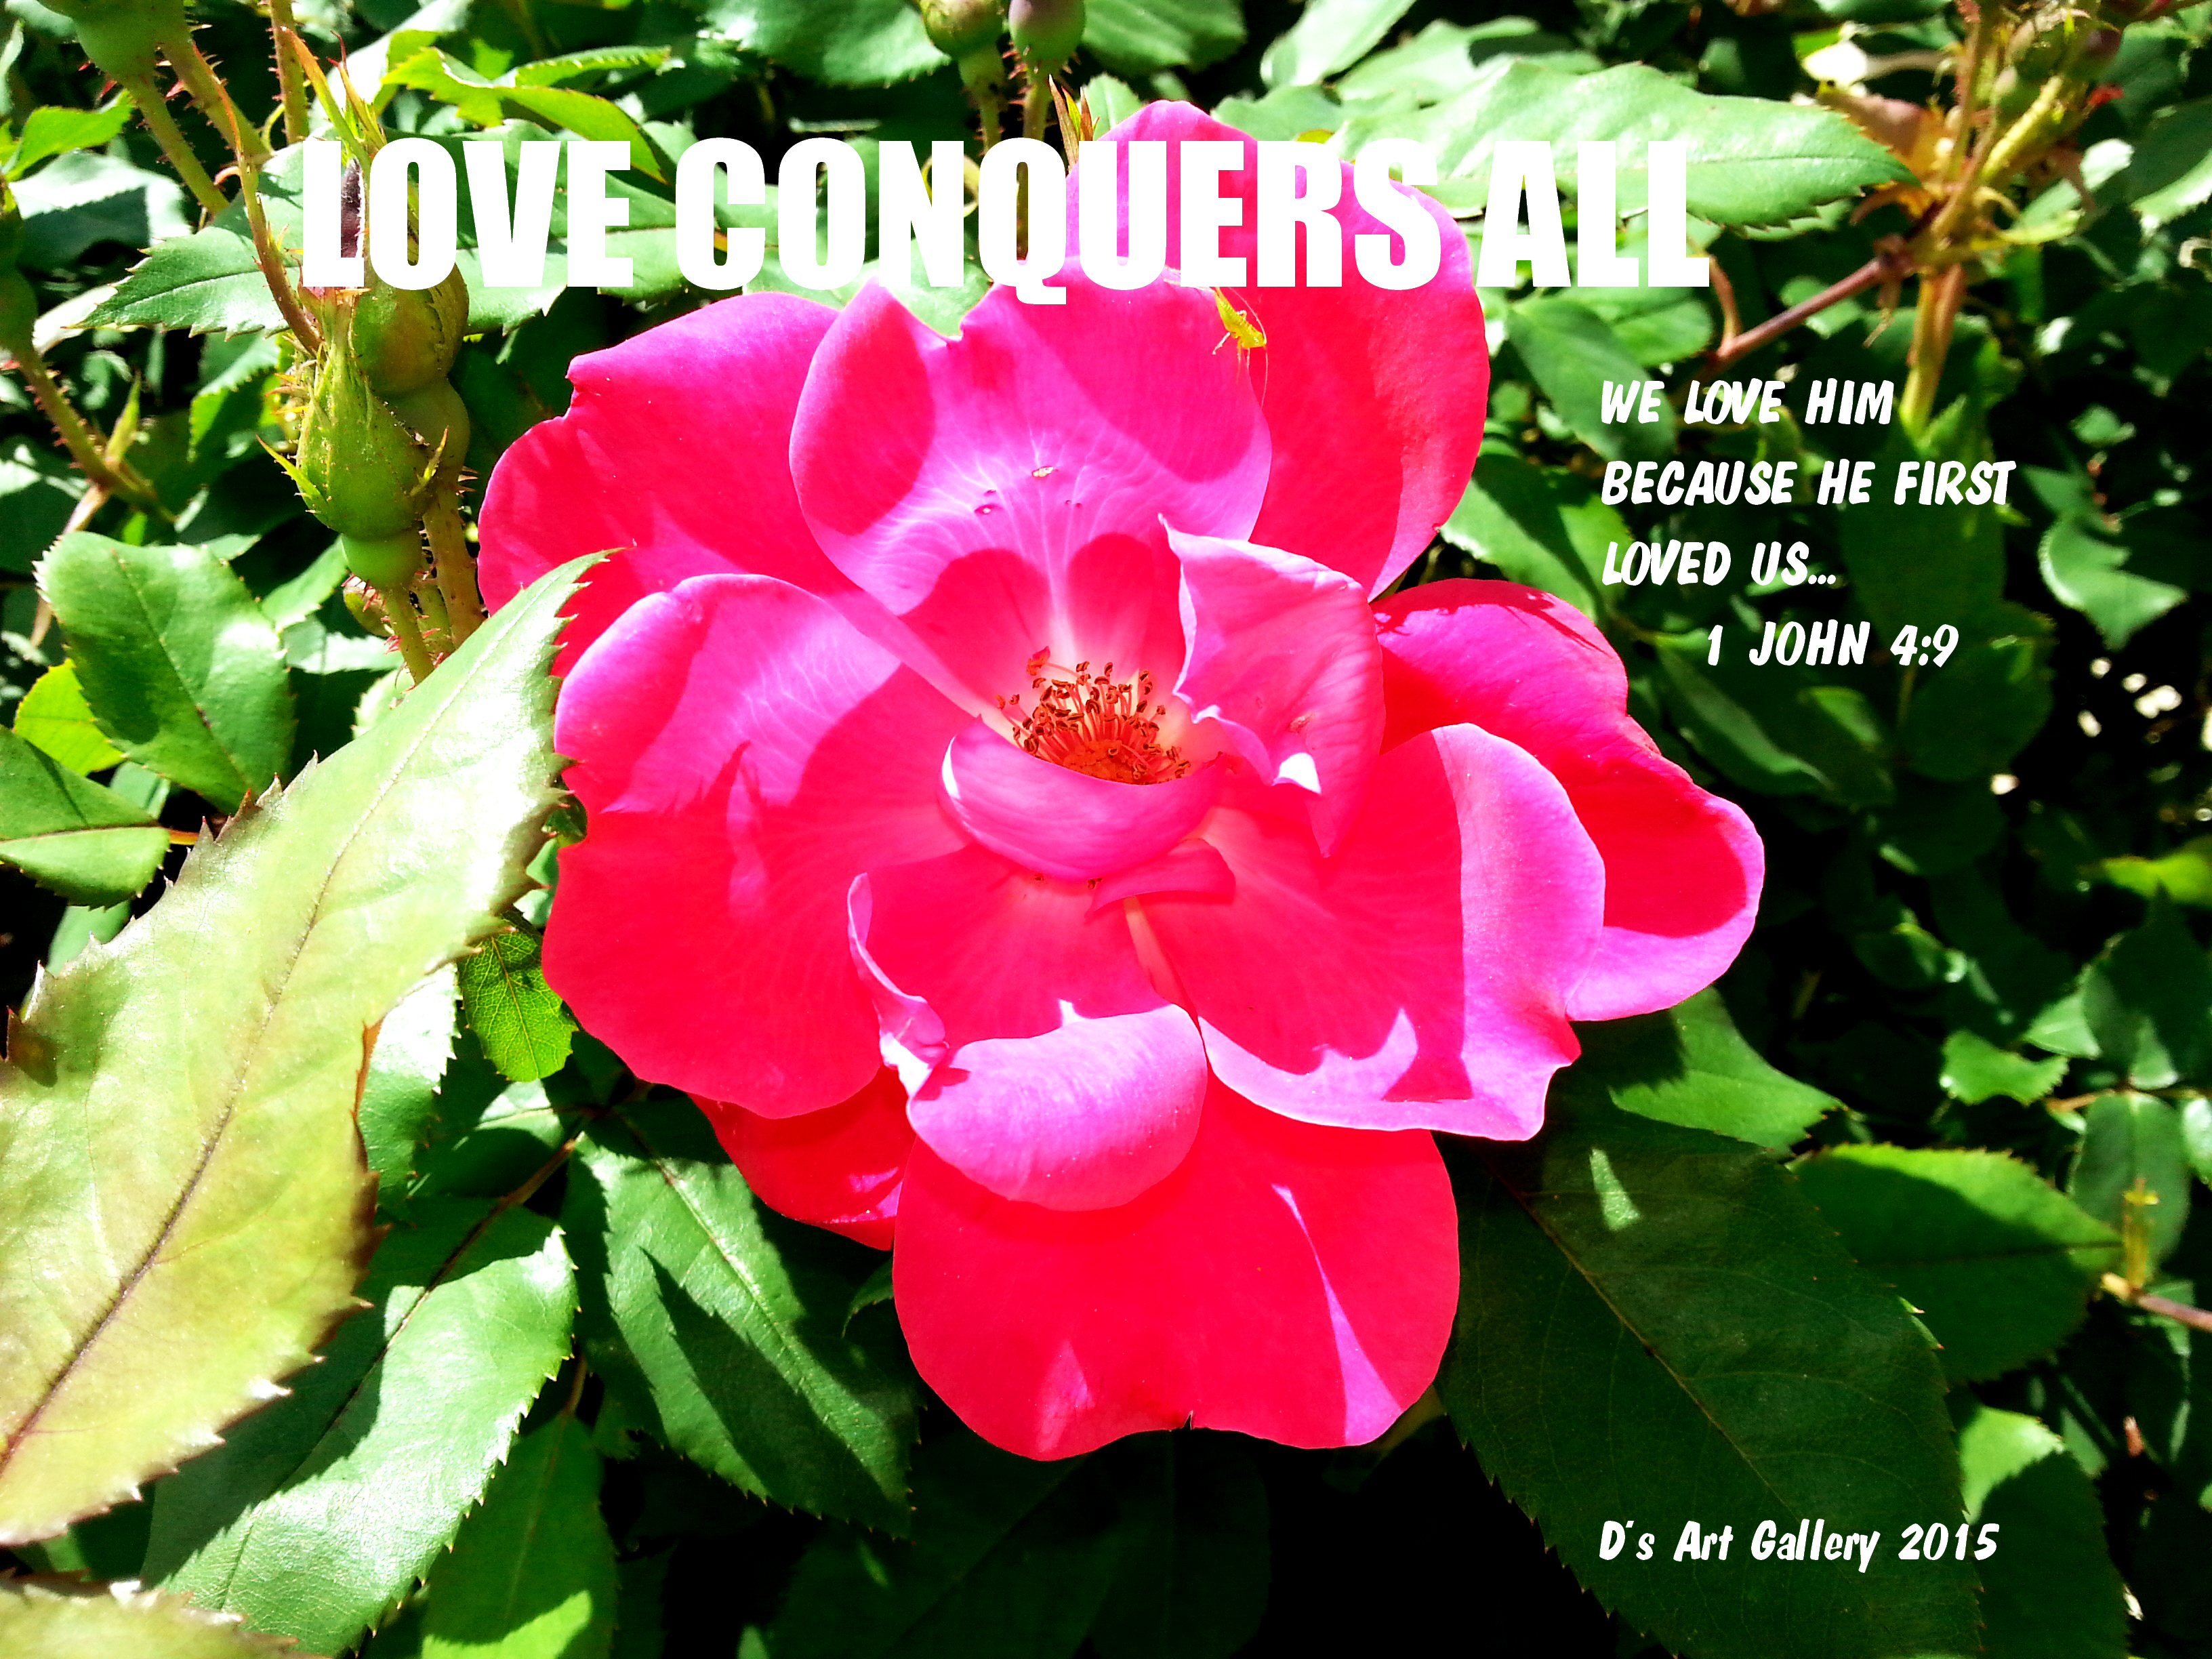 LOVE CONQUERS ALL (Photo by Pastor Davis)